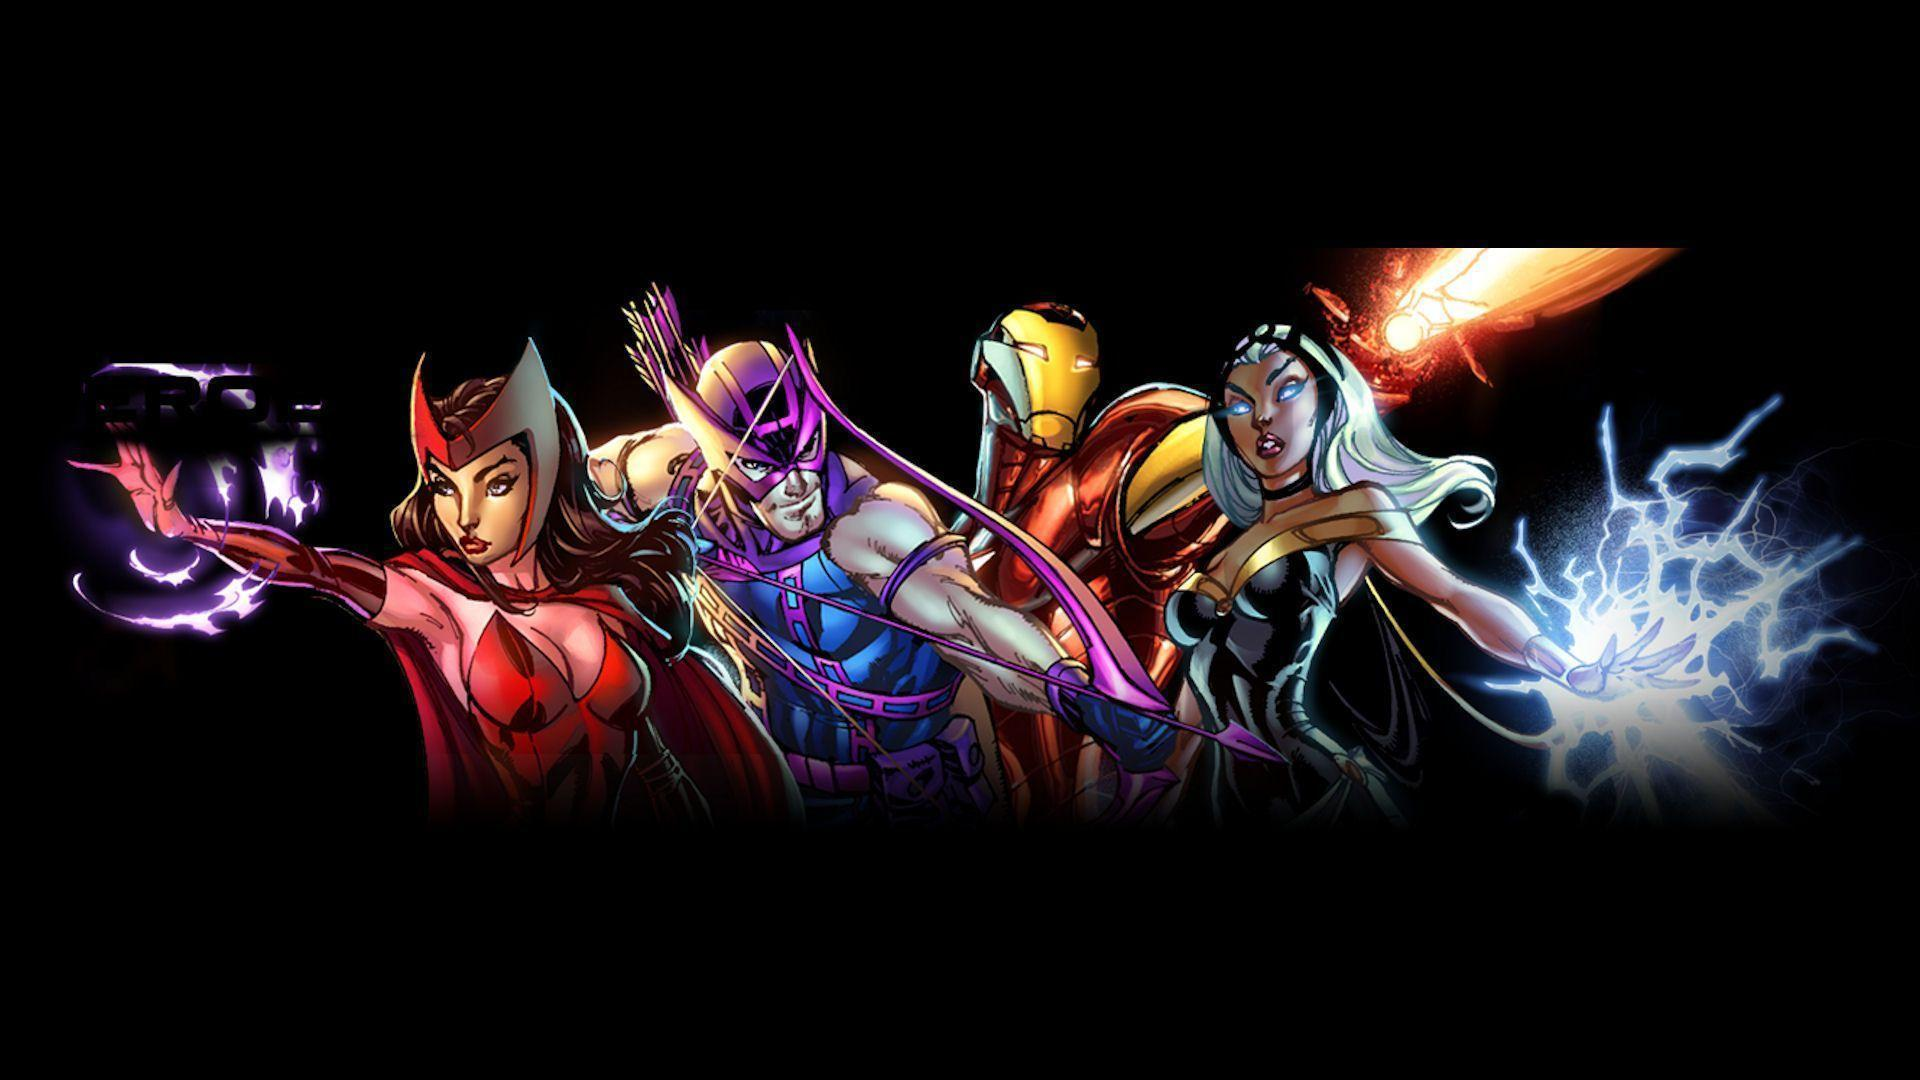 Marvel Heroes Wallpaper (HD)